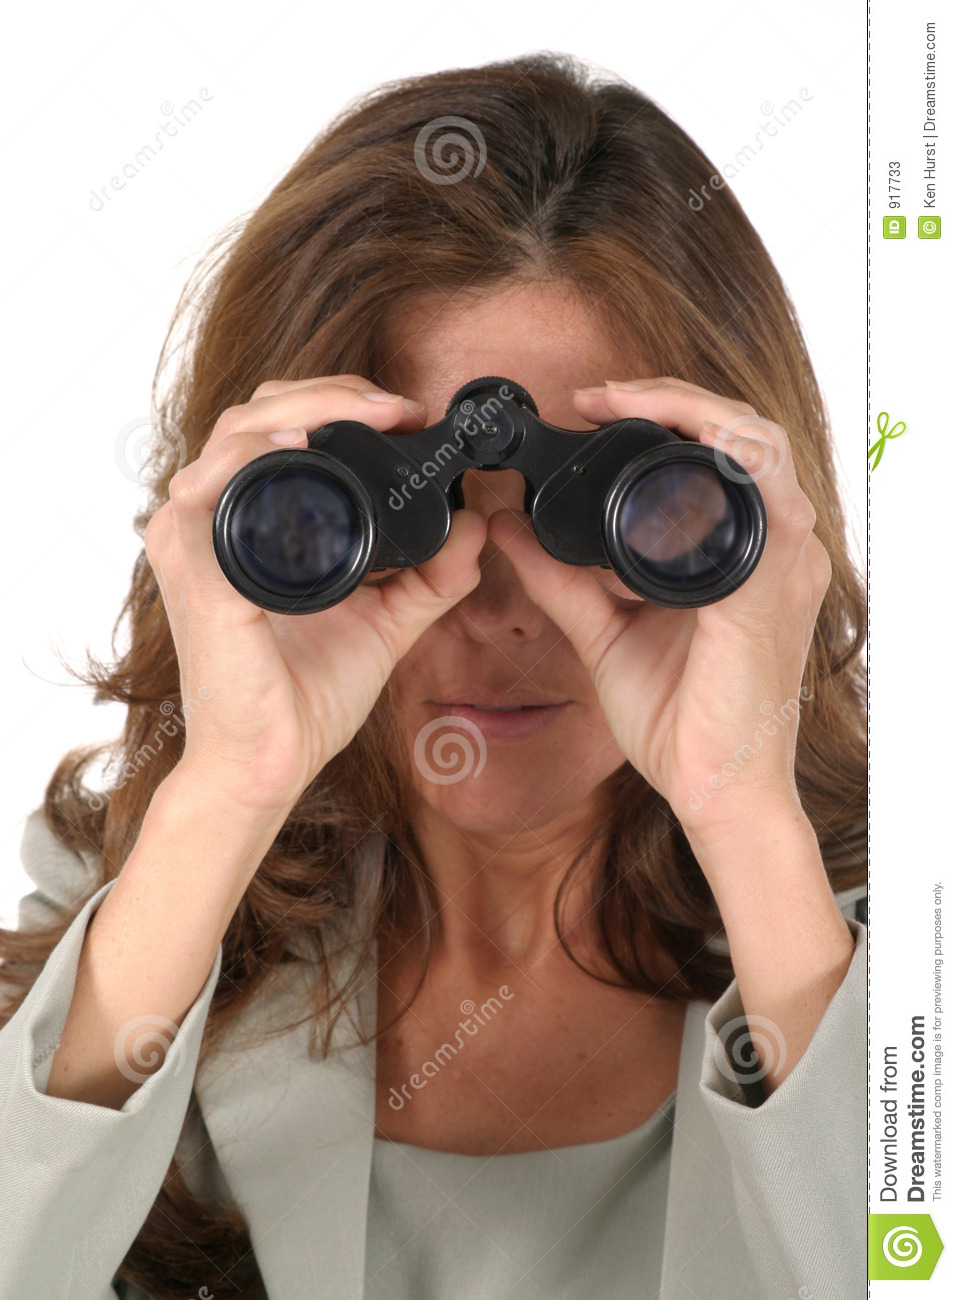 Beautiful Woman Looking Through Binoculars 3 Stock Photos ...